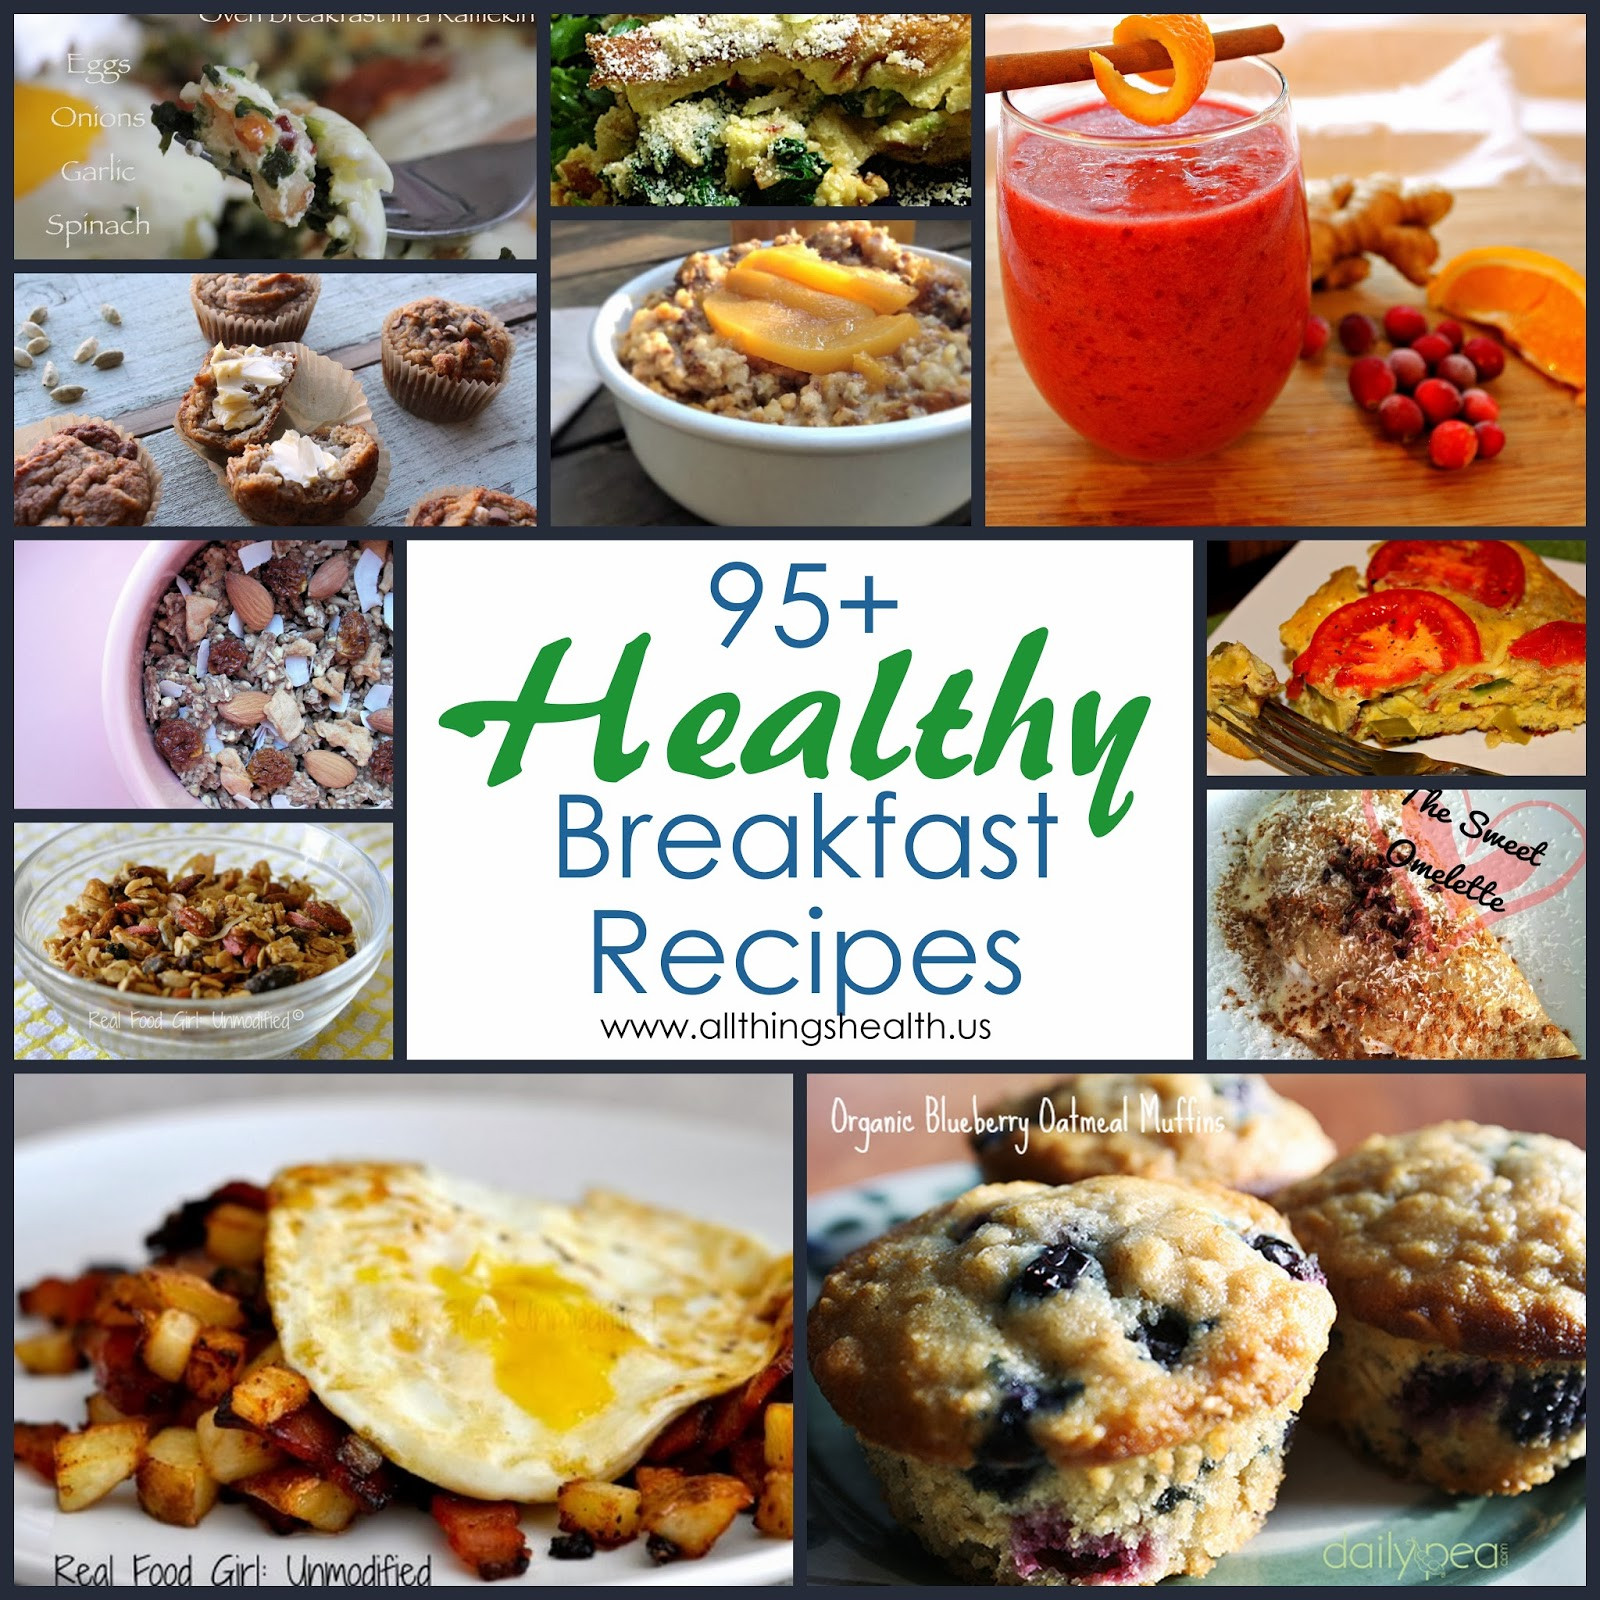 Healthy Things For Breakfast  All Things Health 95 Healthy Breakfast Recipes